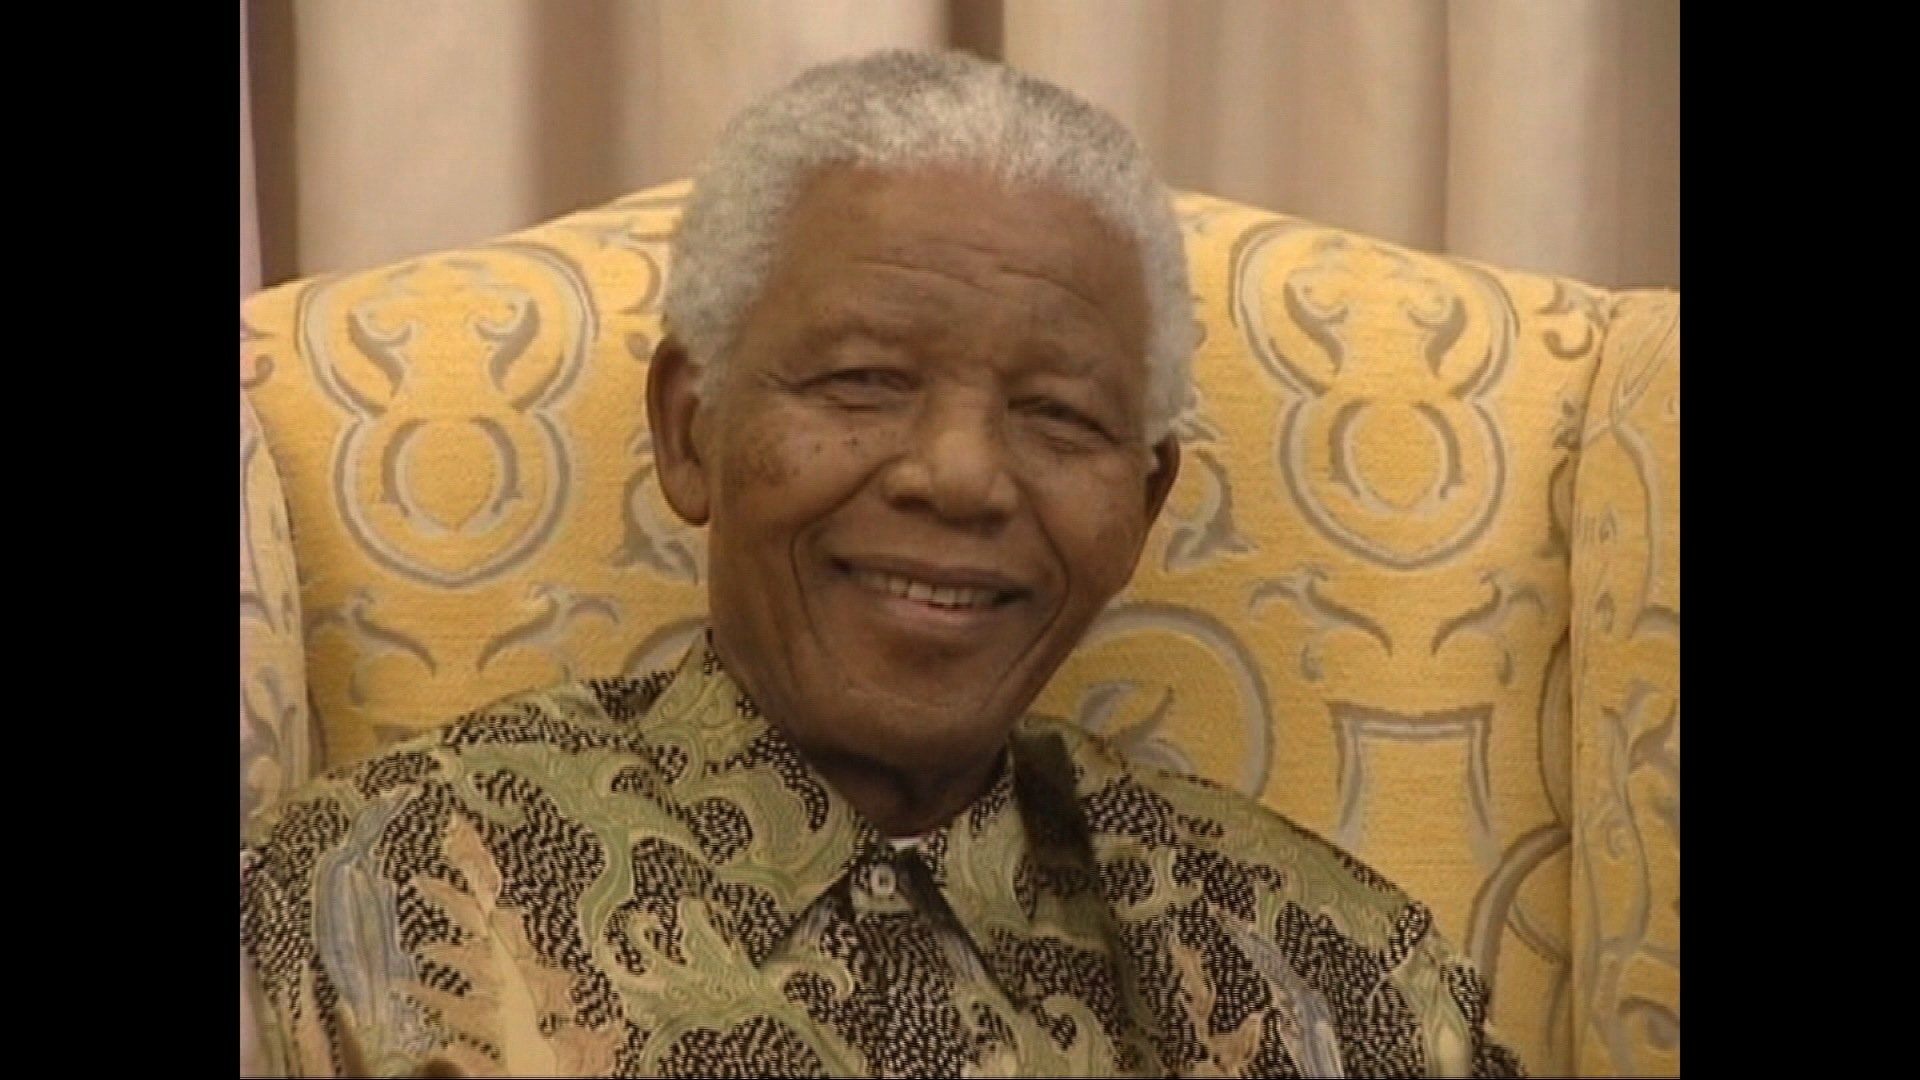 Nelson Mandela, the first black president of South Africa, celebrates his 90th birthday on July 18, 2008 in Qunu, South Africa.